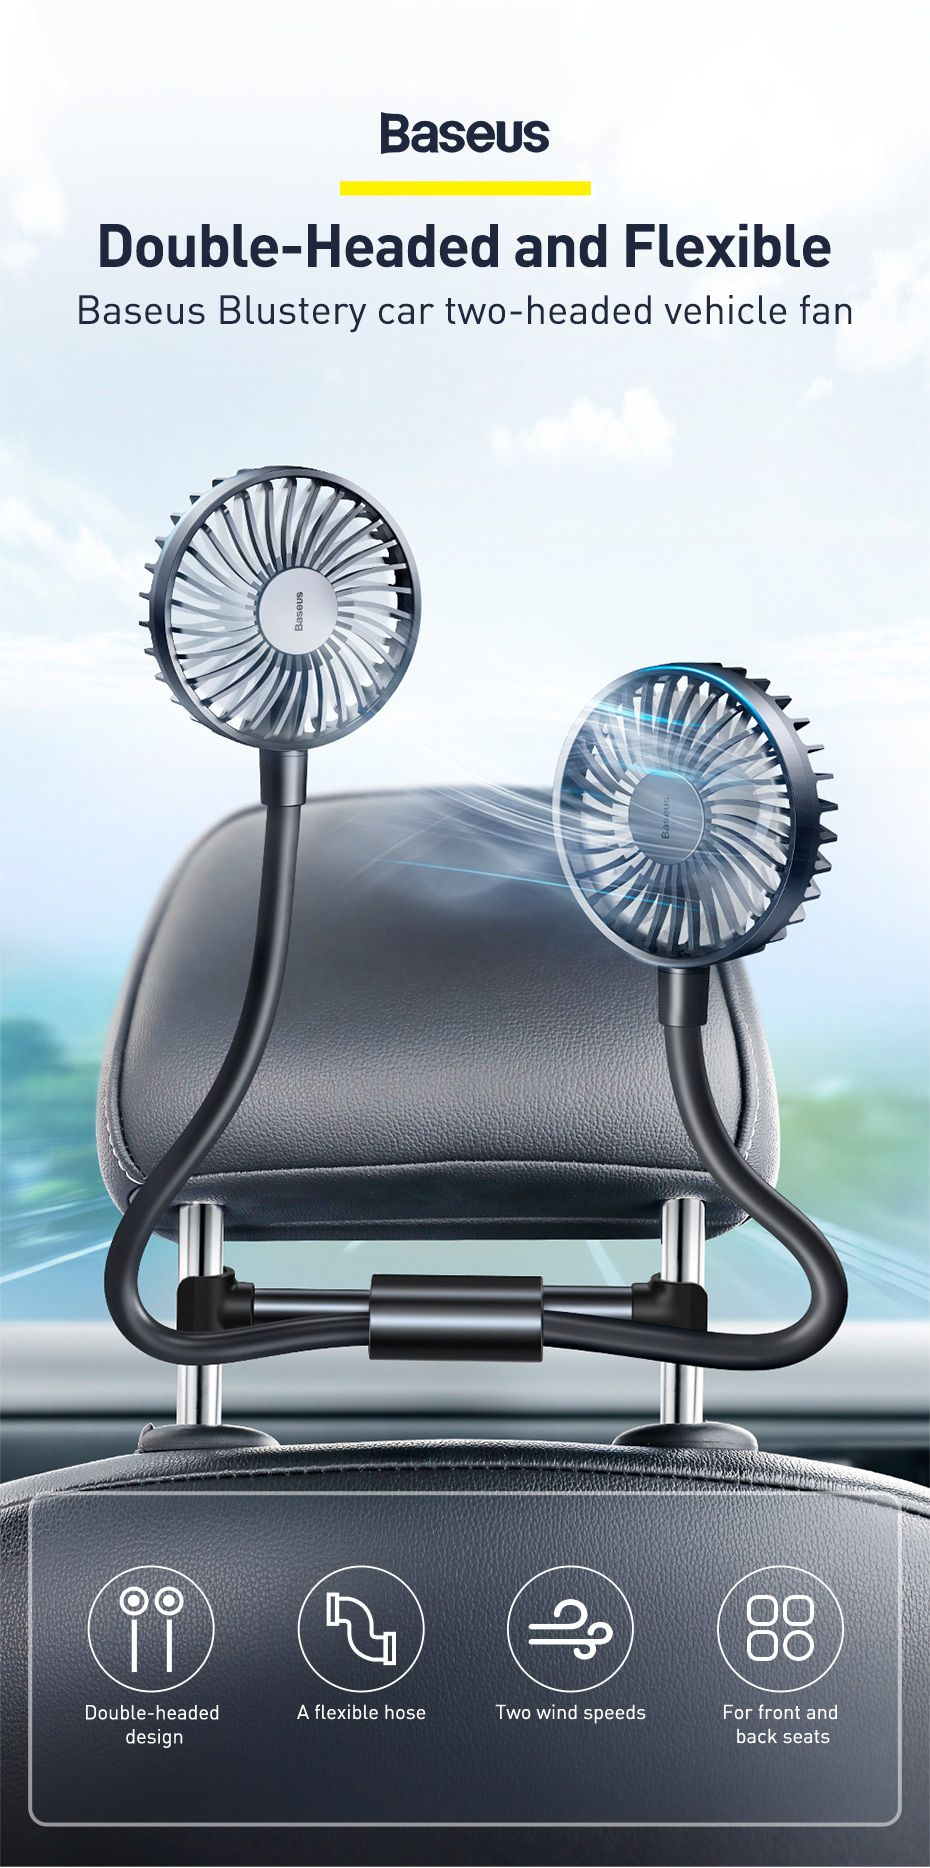 Baseus Blustery Car Two Headed Fan 360 Degree Air Cooling 2 Speed Adjustable Vehicle Fa (1 (3)